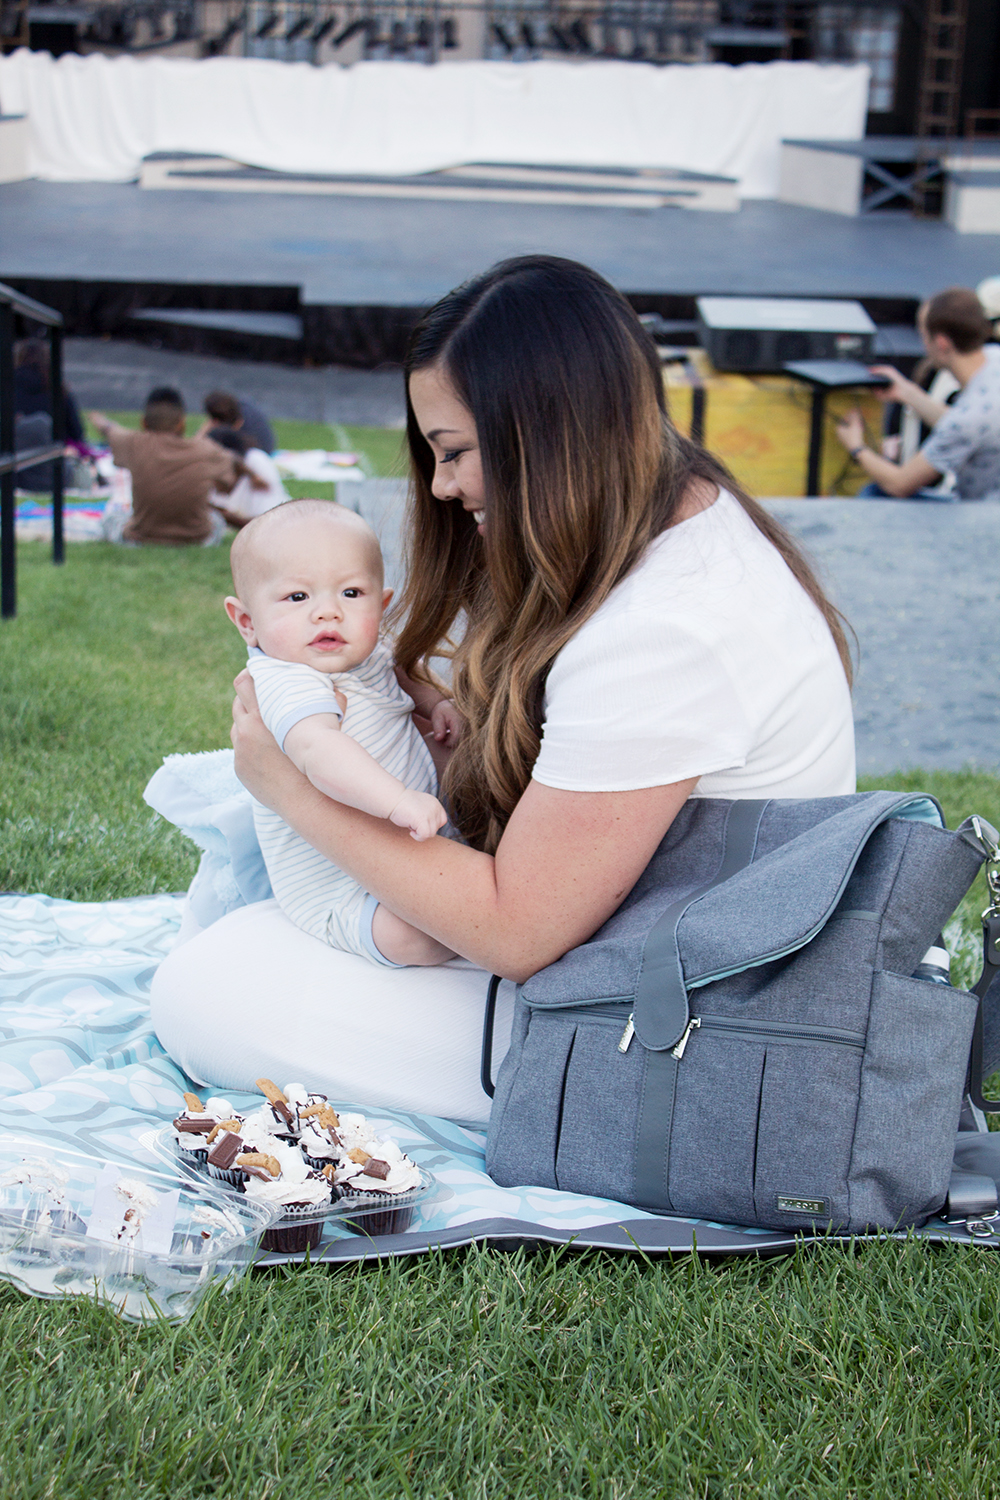 family night, lds family home evening, family home evening ideas, family night activities, 2016 utah summer activities, 2016 utah summer, 2016 utah activities, utah activities, outdoor utah activites, outdoor movie night, outdoor movies, outdoor amplitheater movies, utah outdoor movie list, jj cole, affordable diaper bags, affordable baby backpack, affordable baby bags